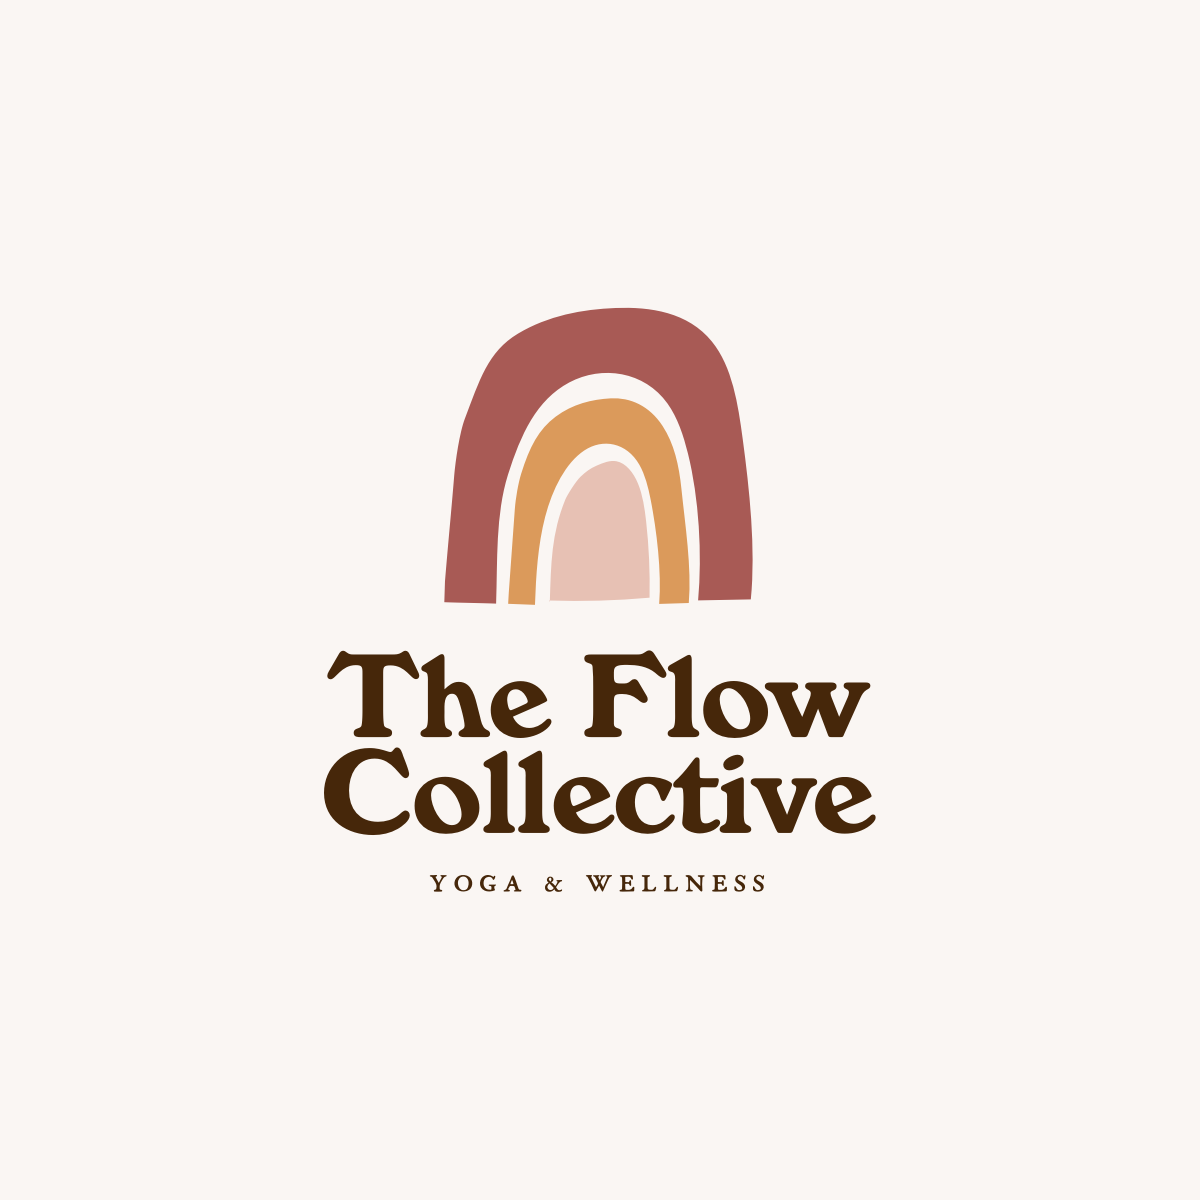 The-Flow-Collective-Yoga-Wellness-Branding-Logo.png